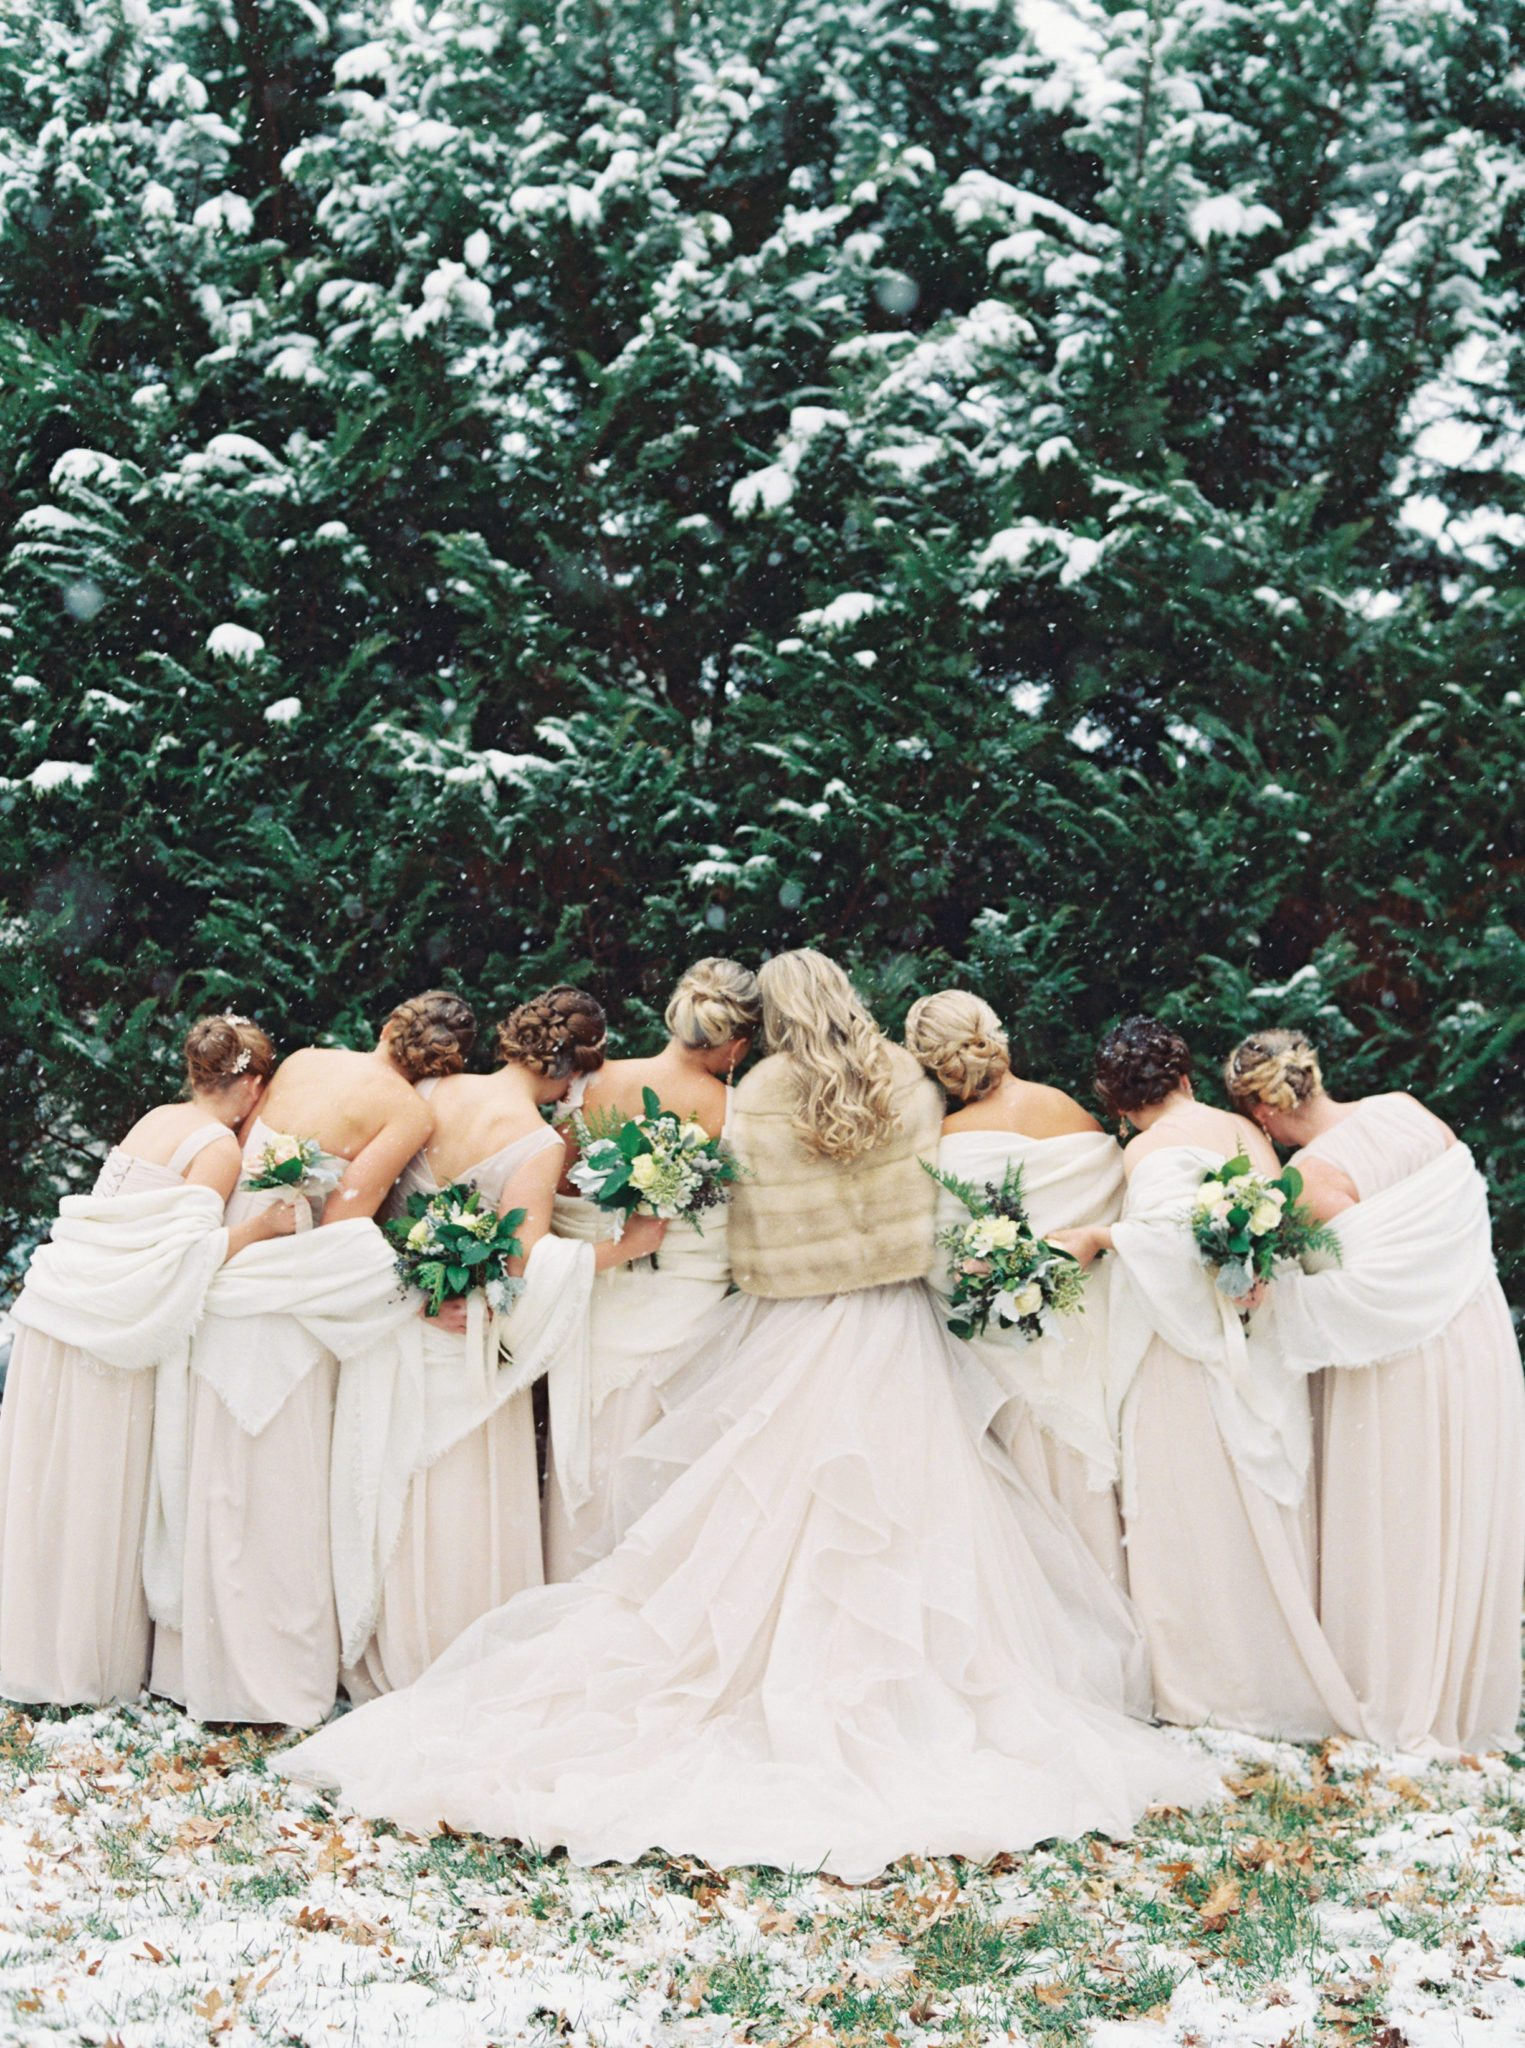 KimStockwellAshleyandMattMoraisVIneyardWedding314 Winter Weddings - A Snow Fairy Tale